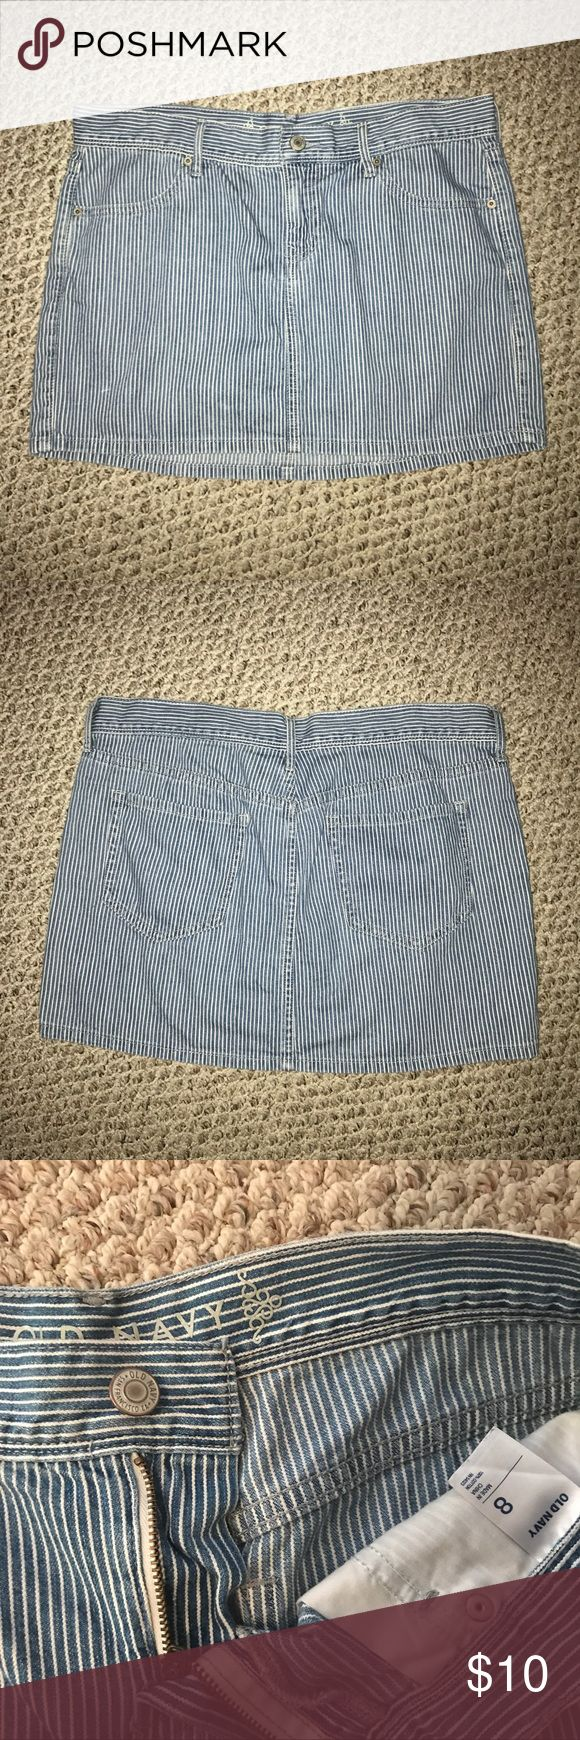 """Striped skirt, size 8 Old Navy striped skirt, length is 13.5"""", used condition Old Navy Skirts Mini"""